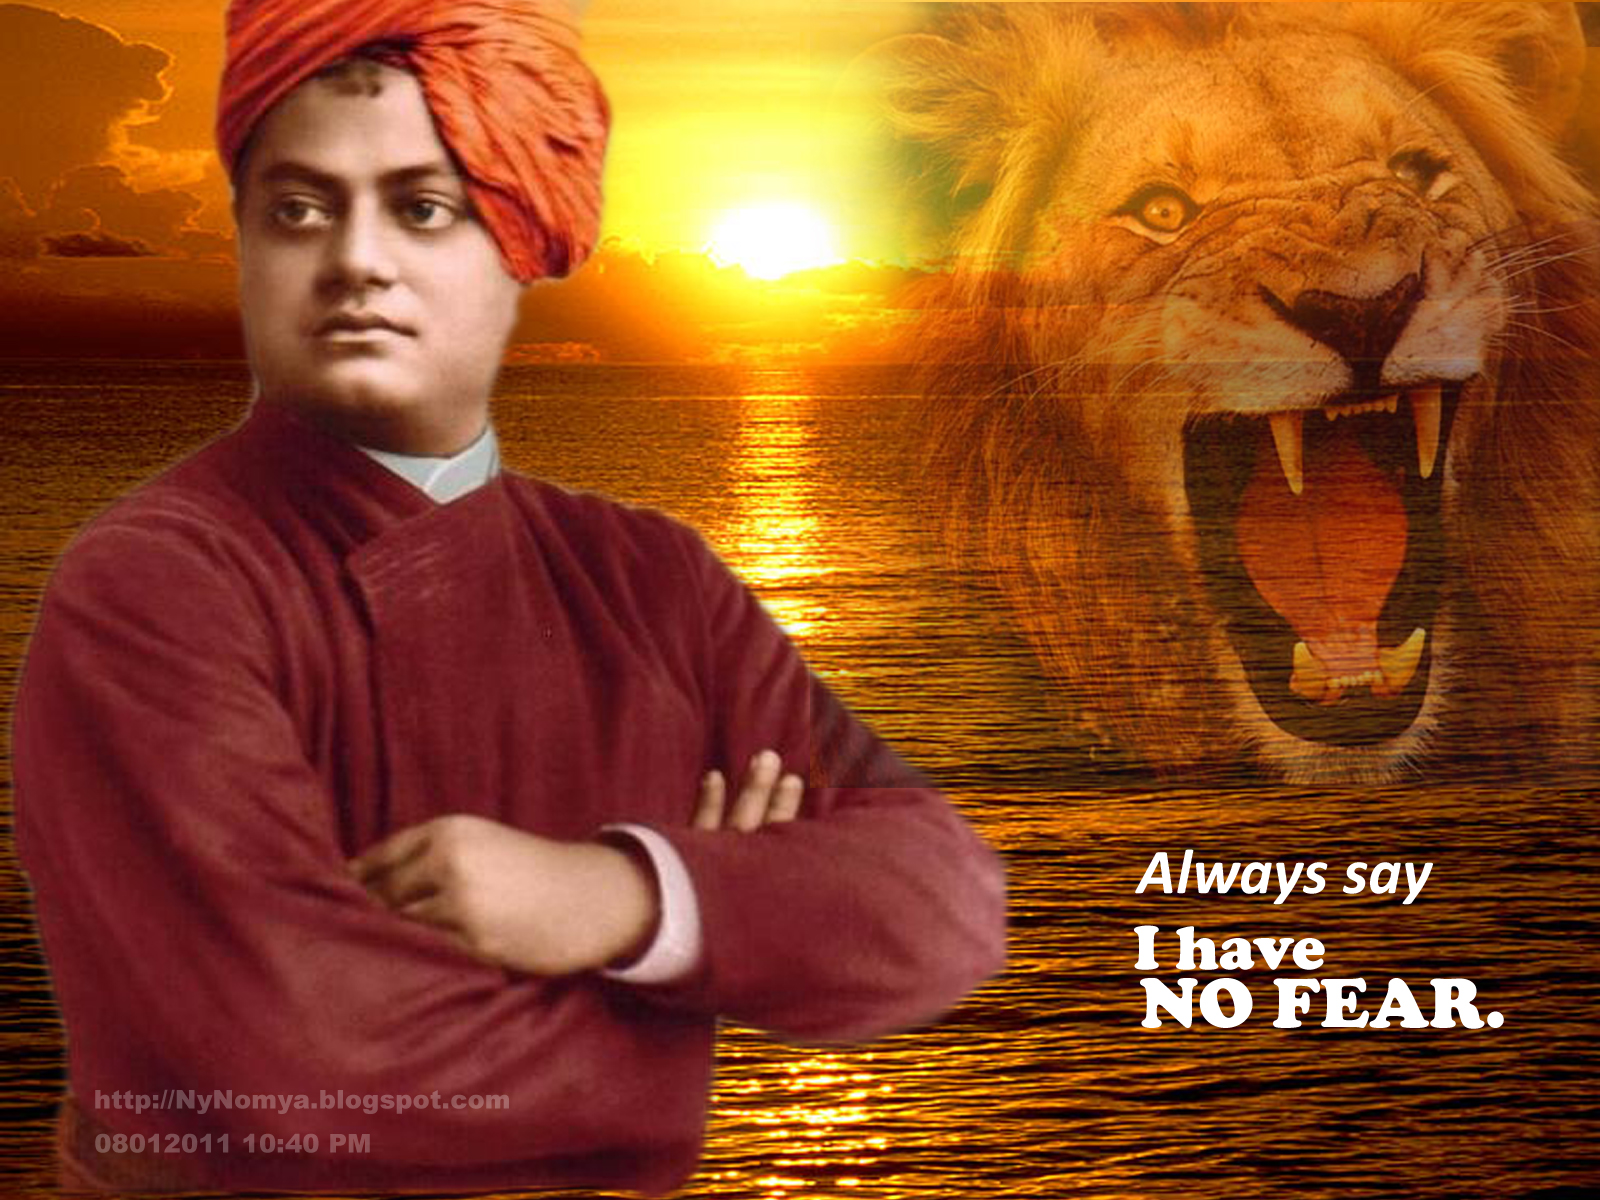 "essay on problems of modern india and swami vivekananda Mains english and essay swami vivekananda: youth and governance -essay whole problem, like lions ""- swami vivekananda expressed this of modern india."